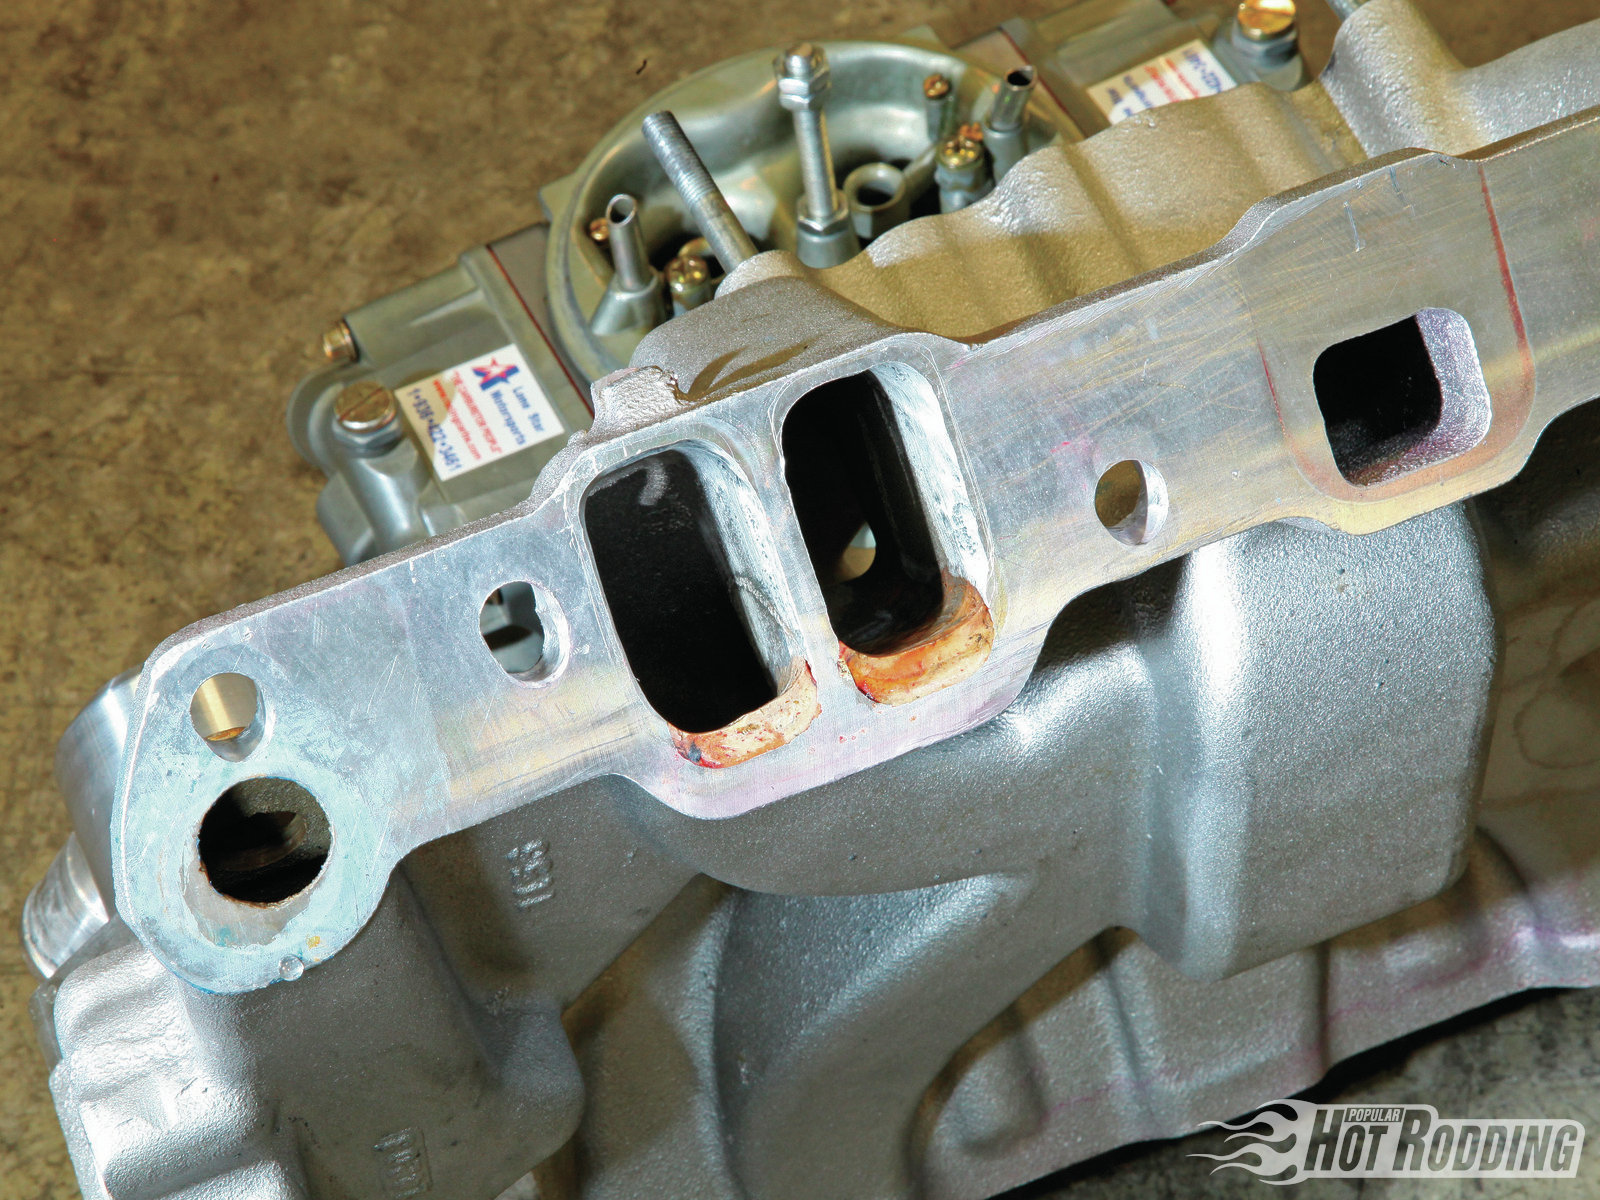 Modifications to the Edelbrock intake manifold were minimal, other than significant reworking at the port exits to match the modified intake ports of the heads.